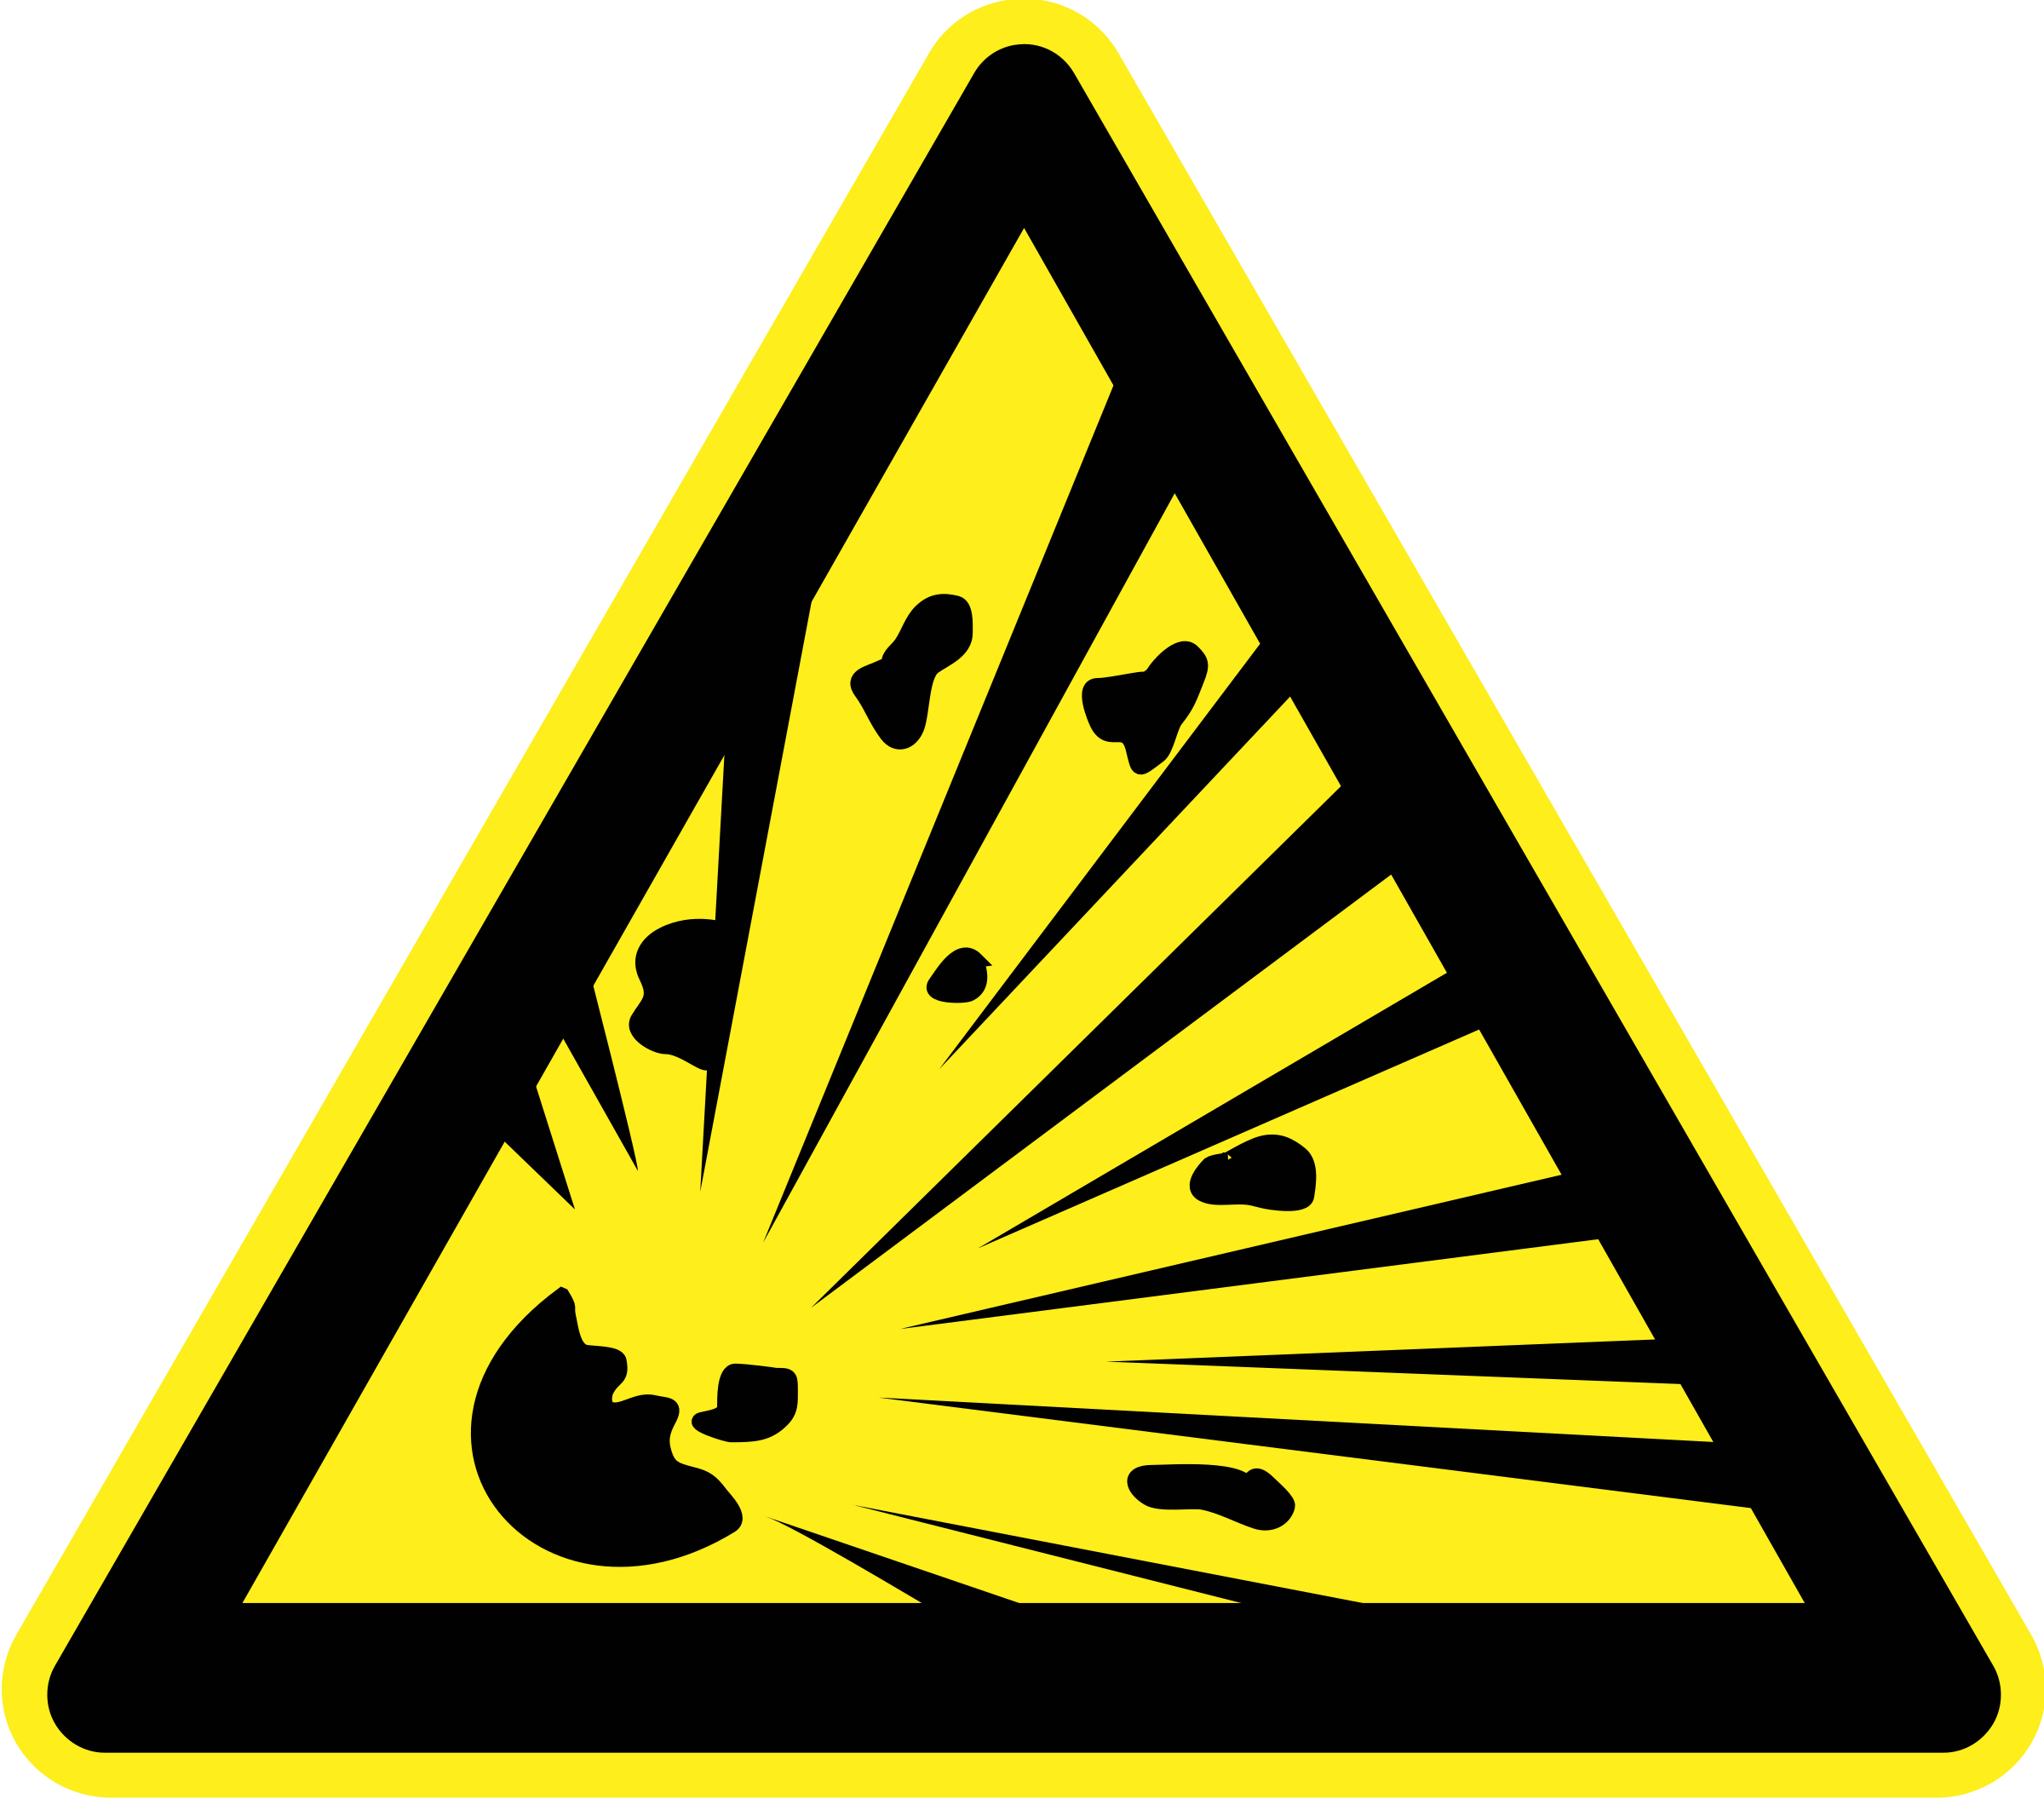 Explosive Material Warning Sign by h0us3s